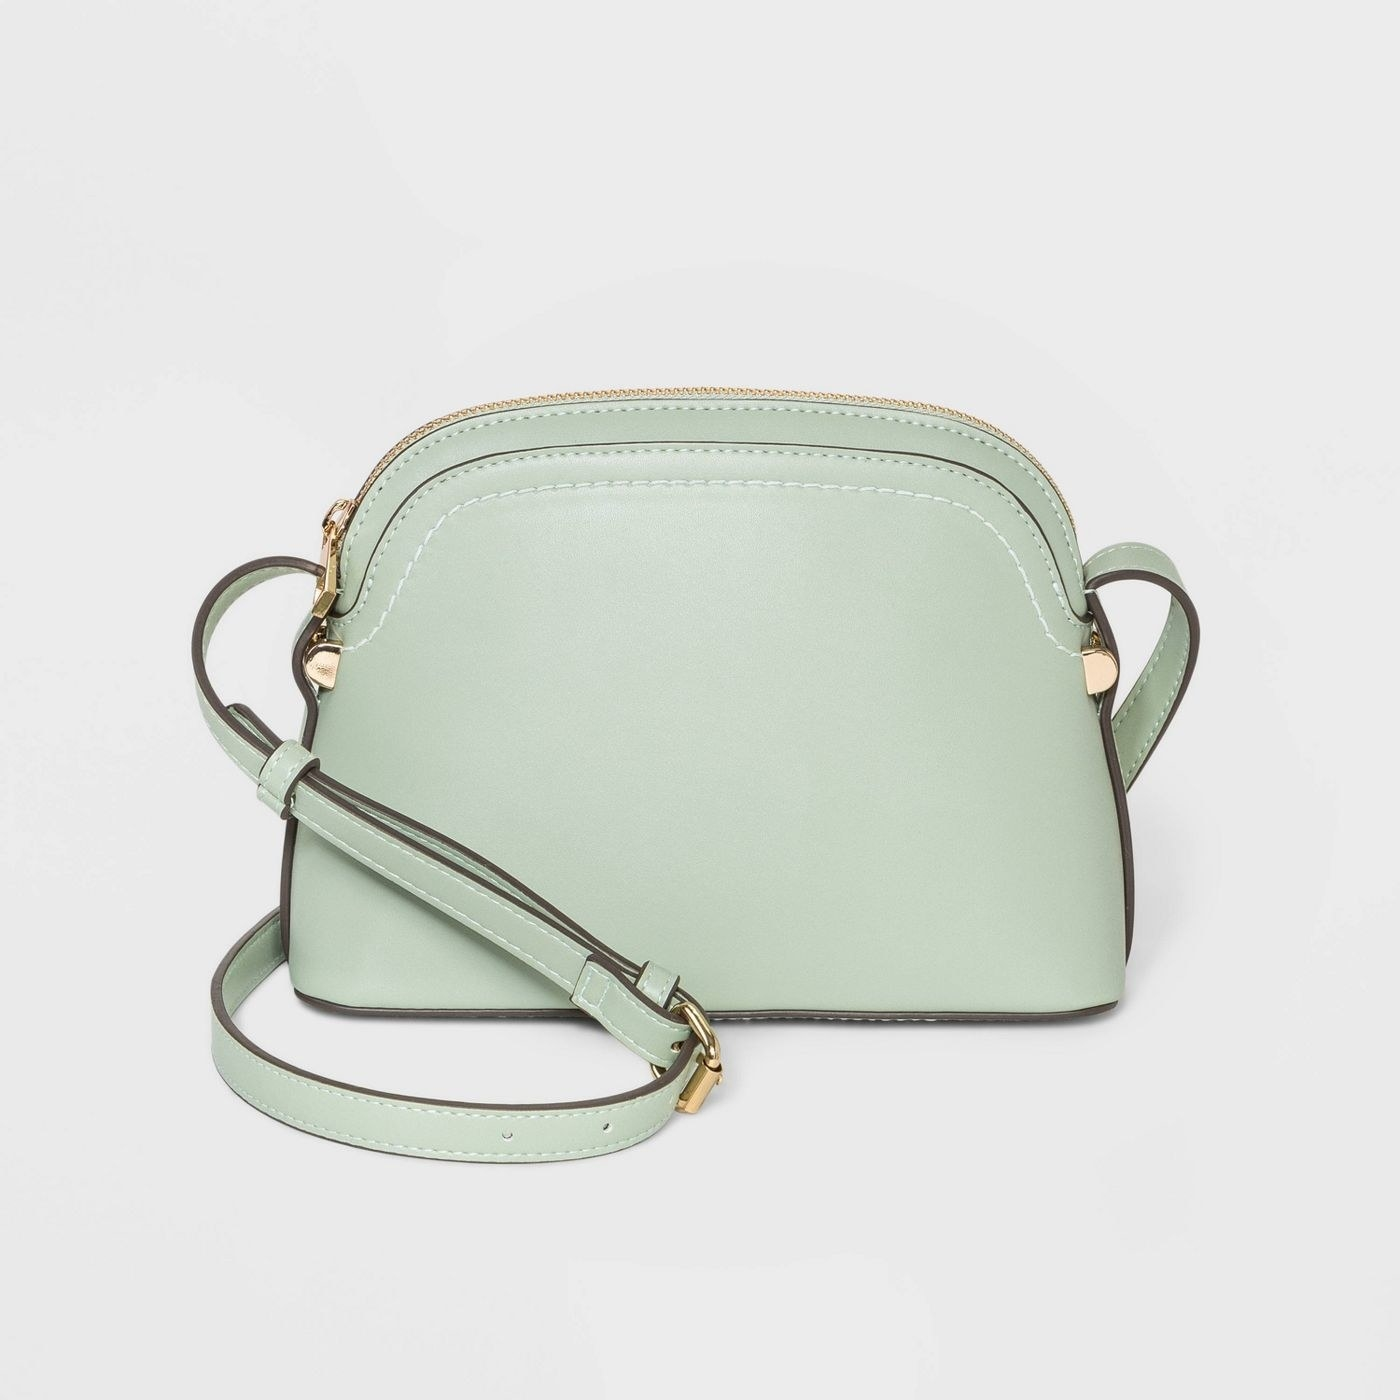 The crossbody bag in mint green